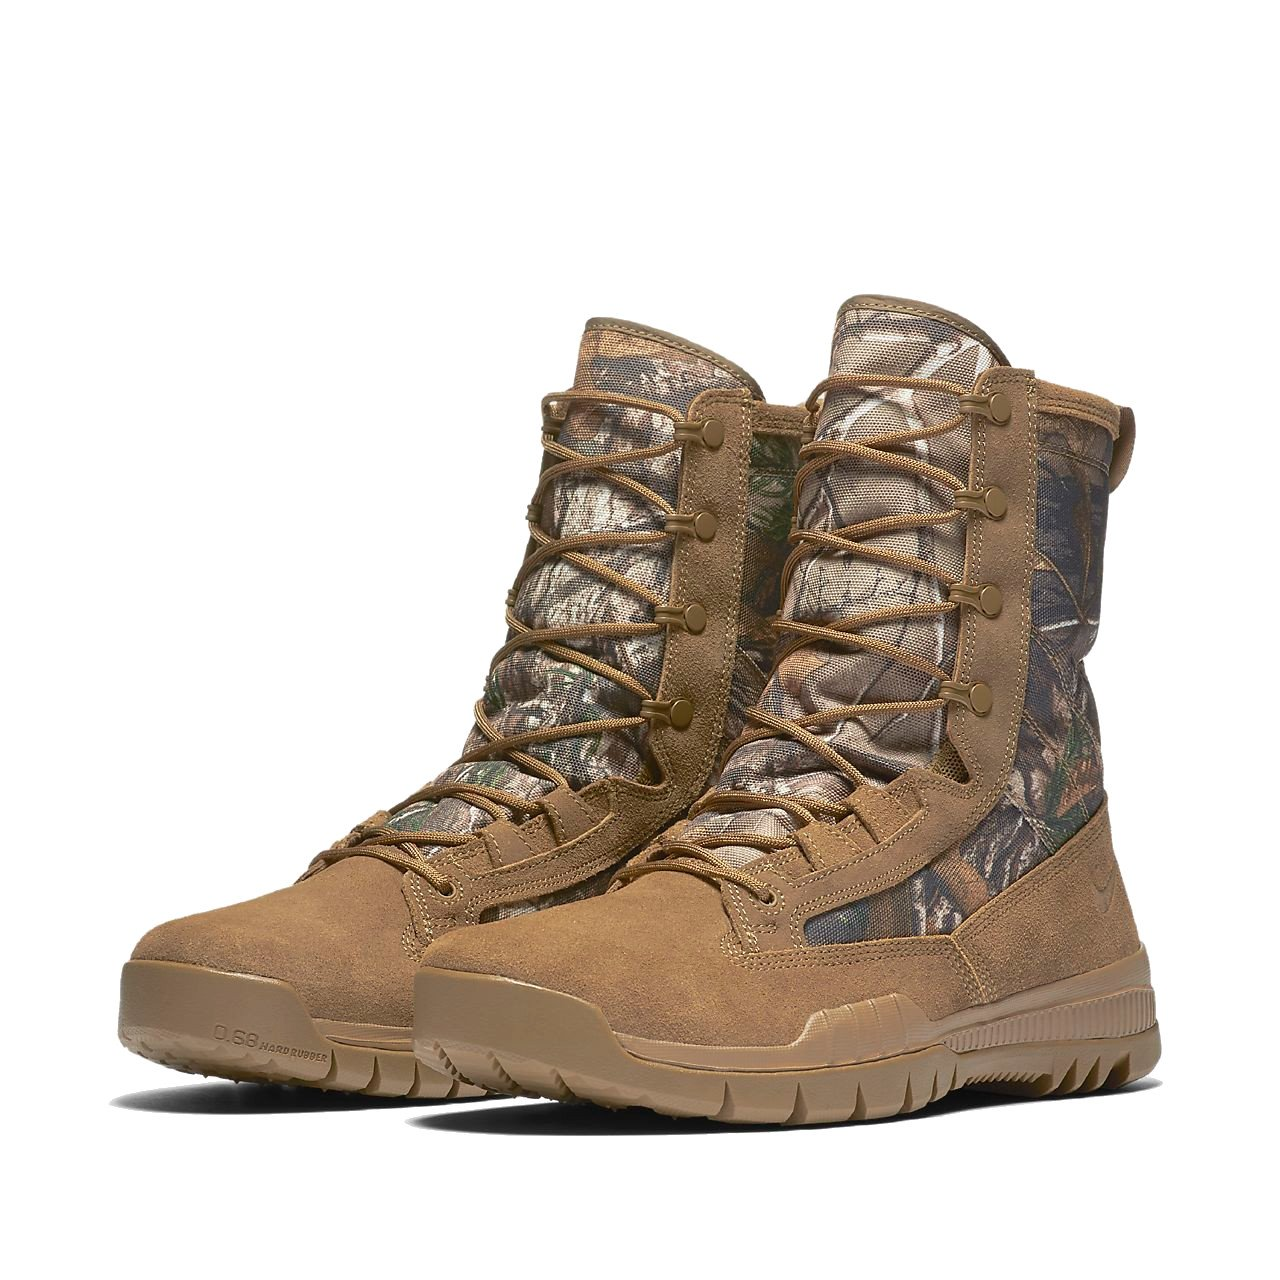 Nike Mens SFB 8'' Field RealTree Boot Coyote/Coyote 845167-990 (12.5 M US) by NIKE